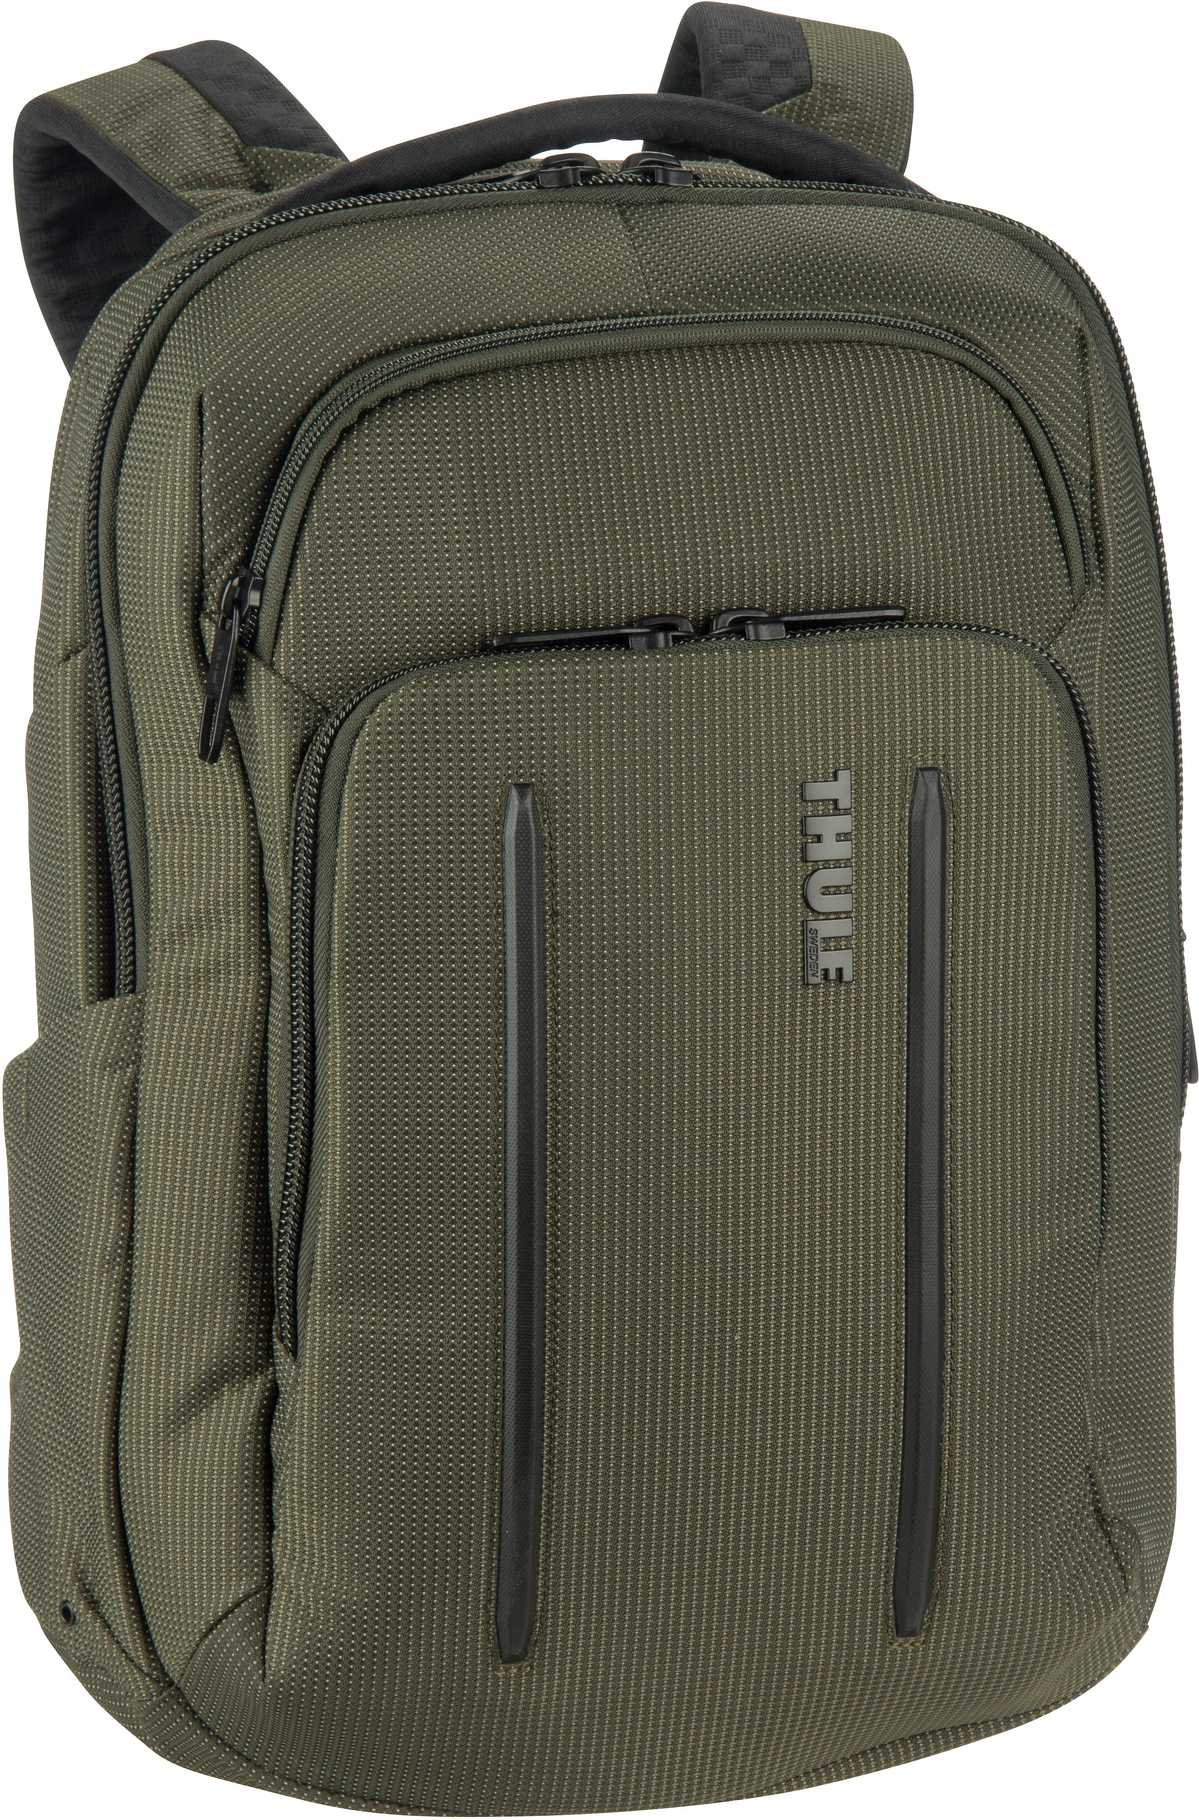 Rucksack / Daypack Crossover 2 Backpack 20L Forest Night (20 Liter)